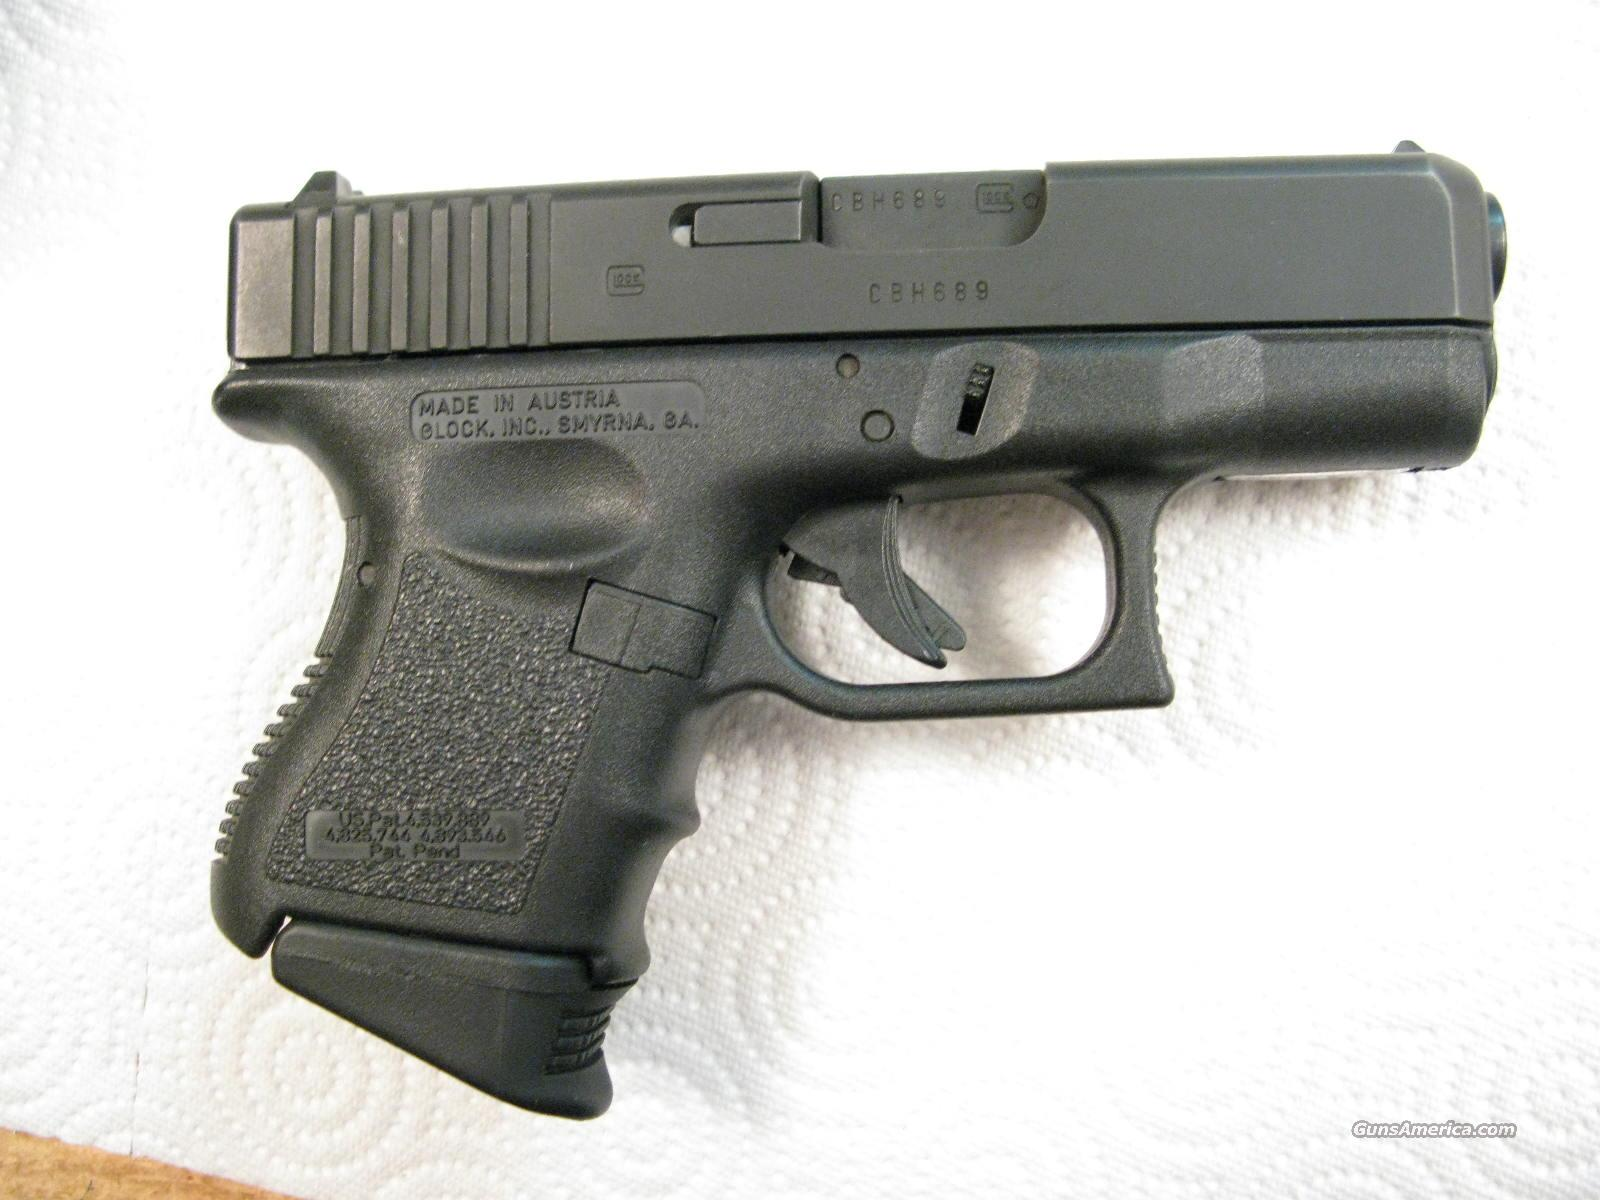 M-27 .40 Cal. Older Model As New in Box   Guns > Pistols > Glock Pistols > 26/27